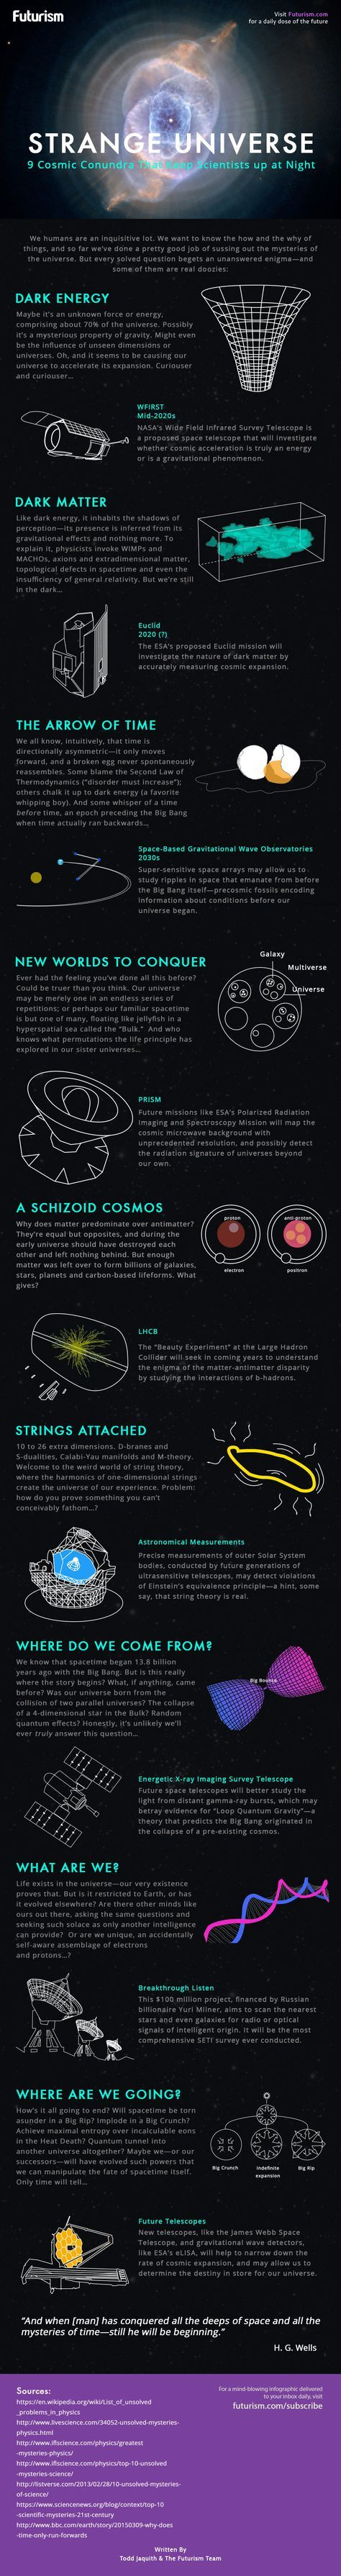 Dark energy, dark matter, string theory, the big crunch... These are the physics questions that keep scientists up at night.http://futurism.com/images/9-physics-questions-baffling-scientists-infographic/?utm_campaign=coschedule&utm_source=pinterest&utm_medium=Futurism&utm_content=9%20Physics%20Questions%20Baffling%20Scientists%20%5BINFOGRAPHIC%5D